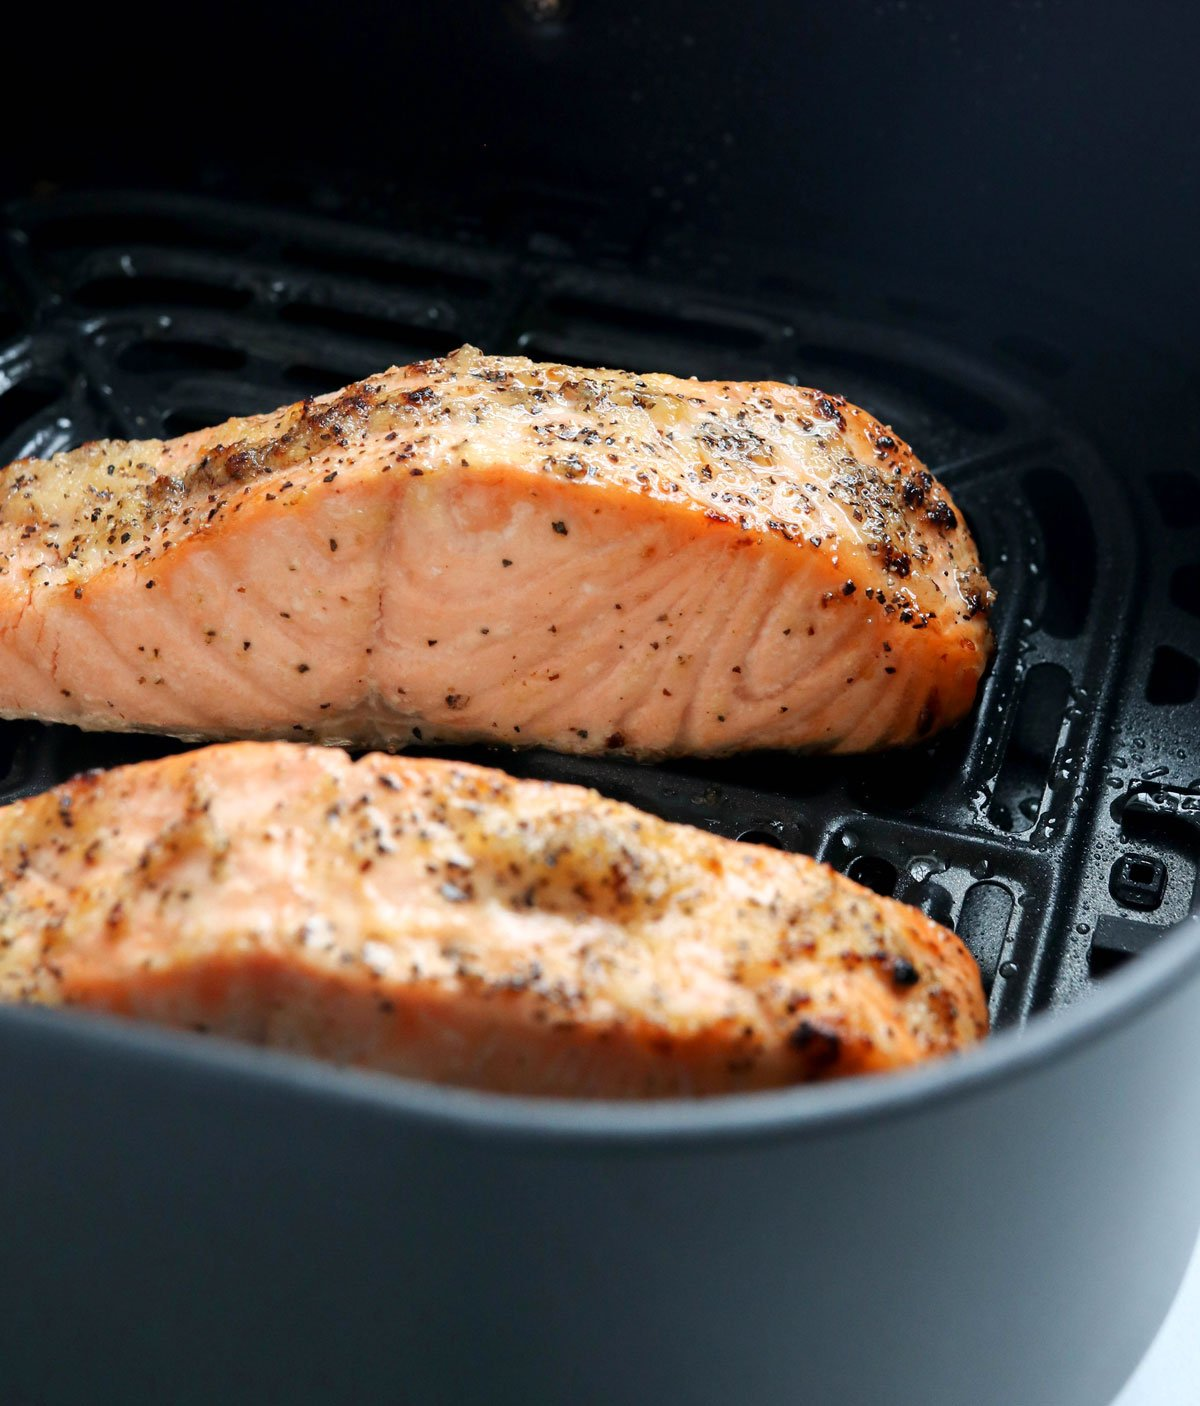 cooked salmon in the air fryer basket